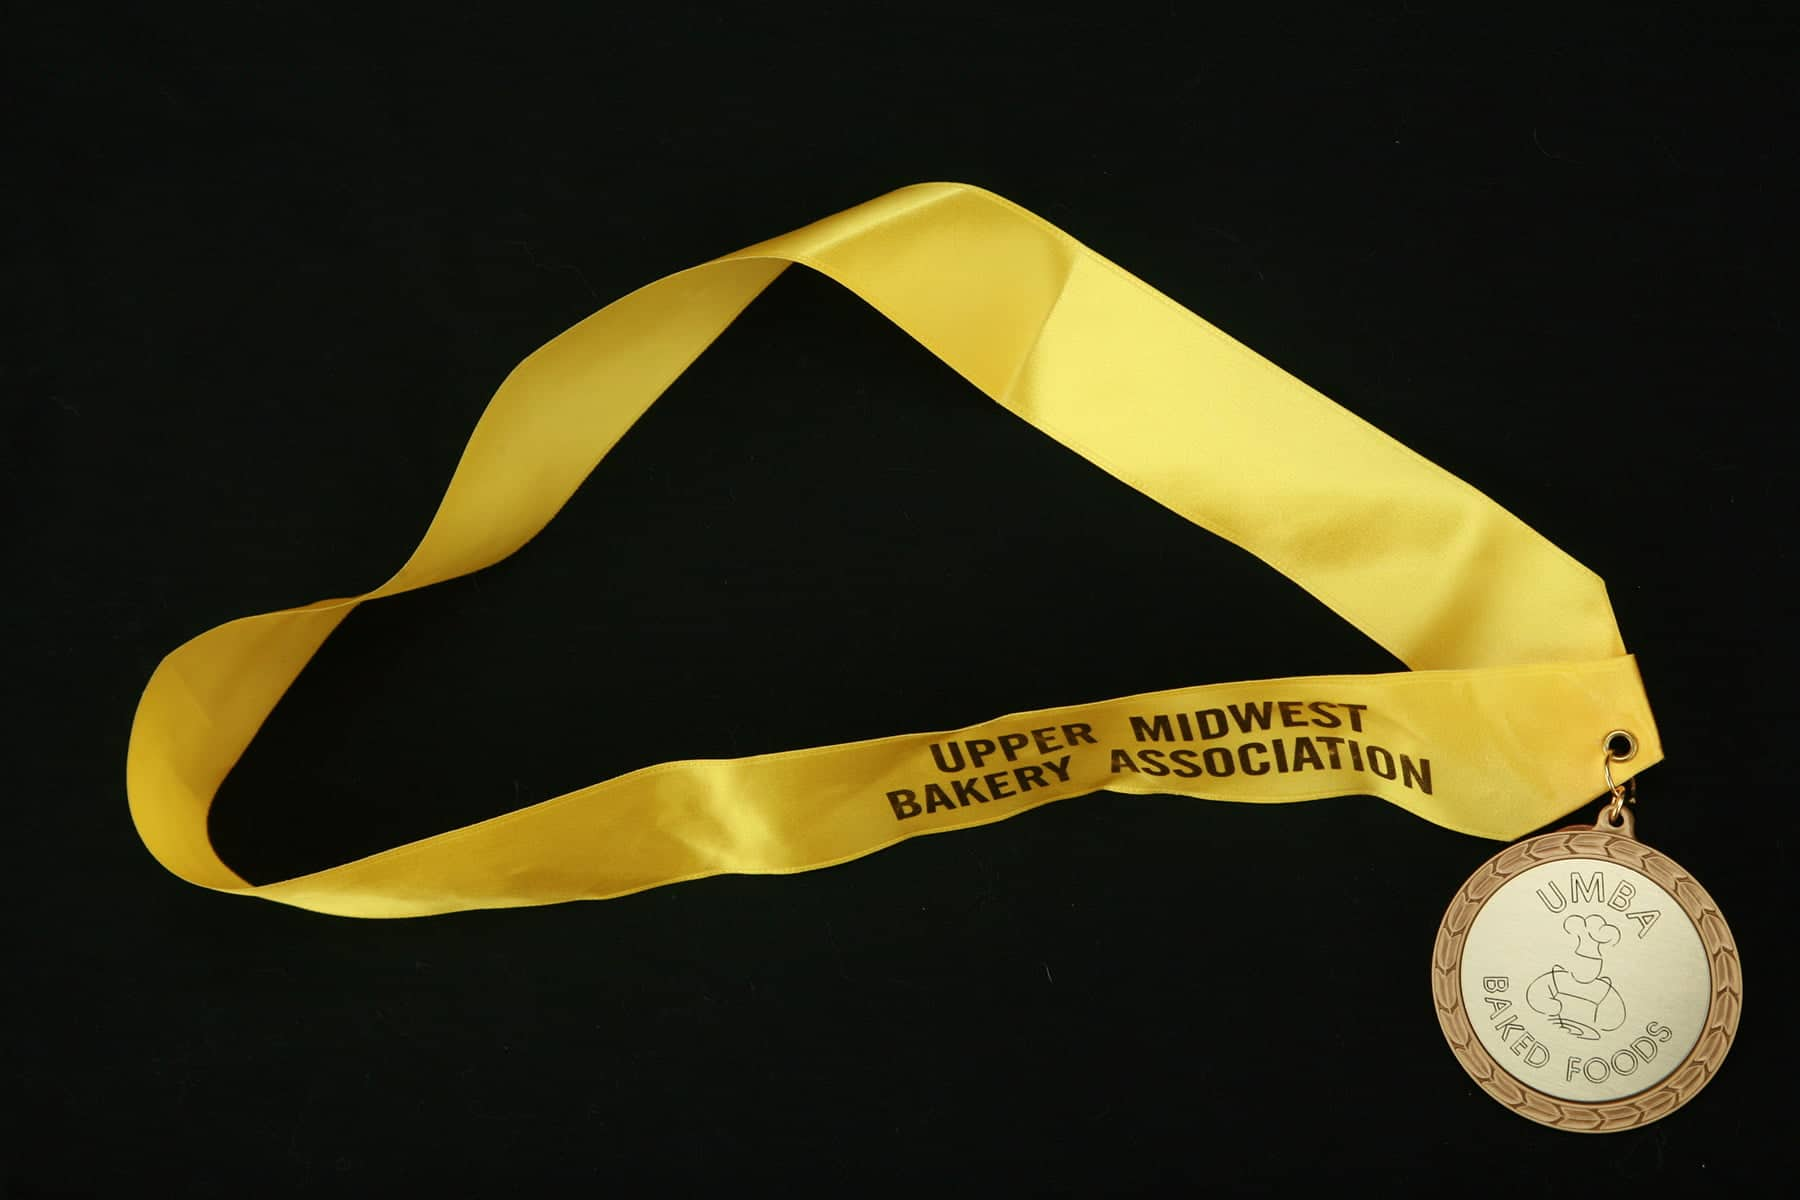 A competition gold medal with a bright yellow ribbon, against a black background.